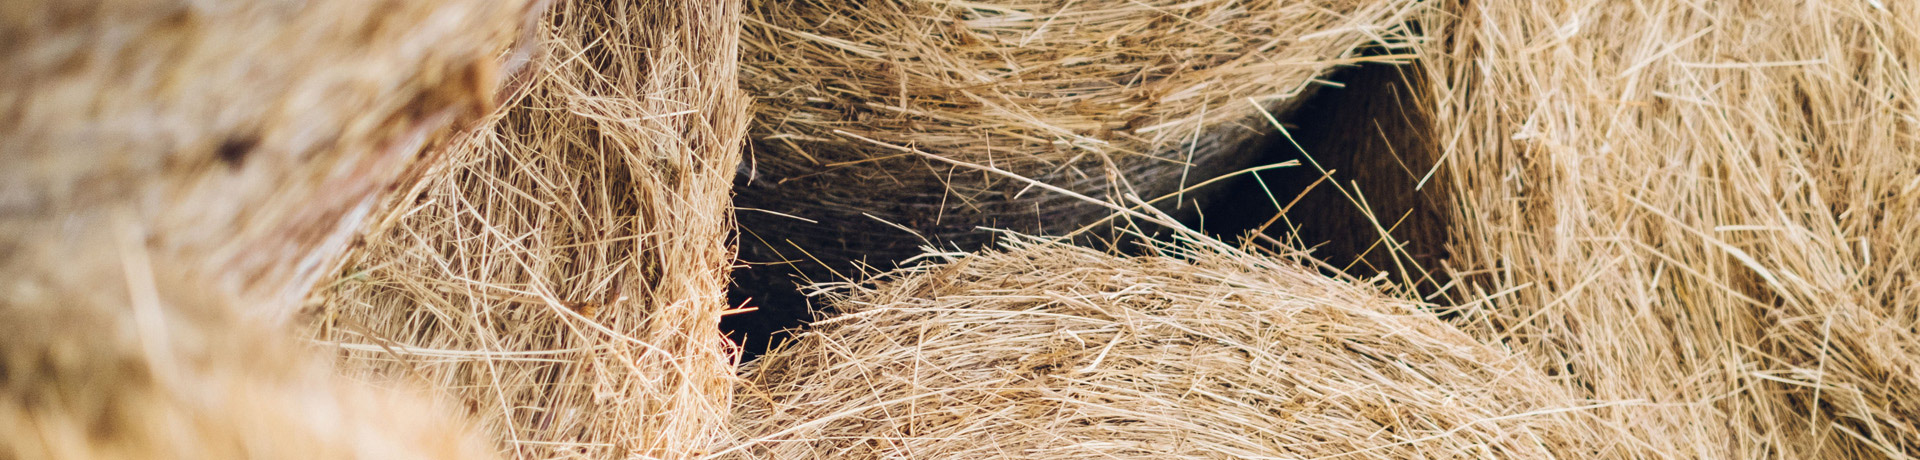 straw bale thermal insulation